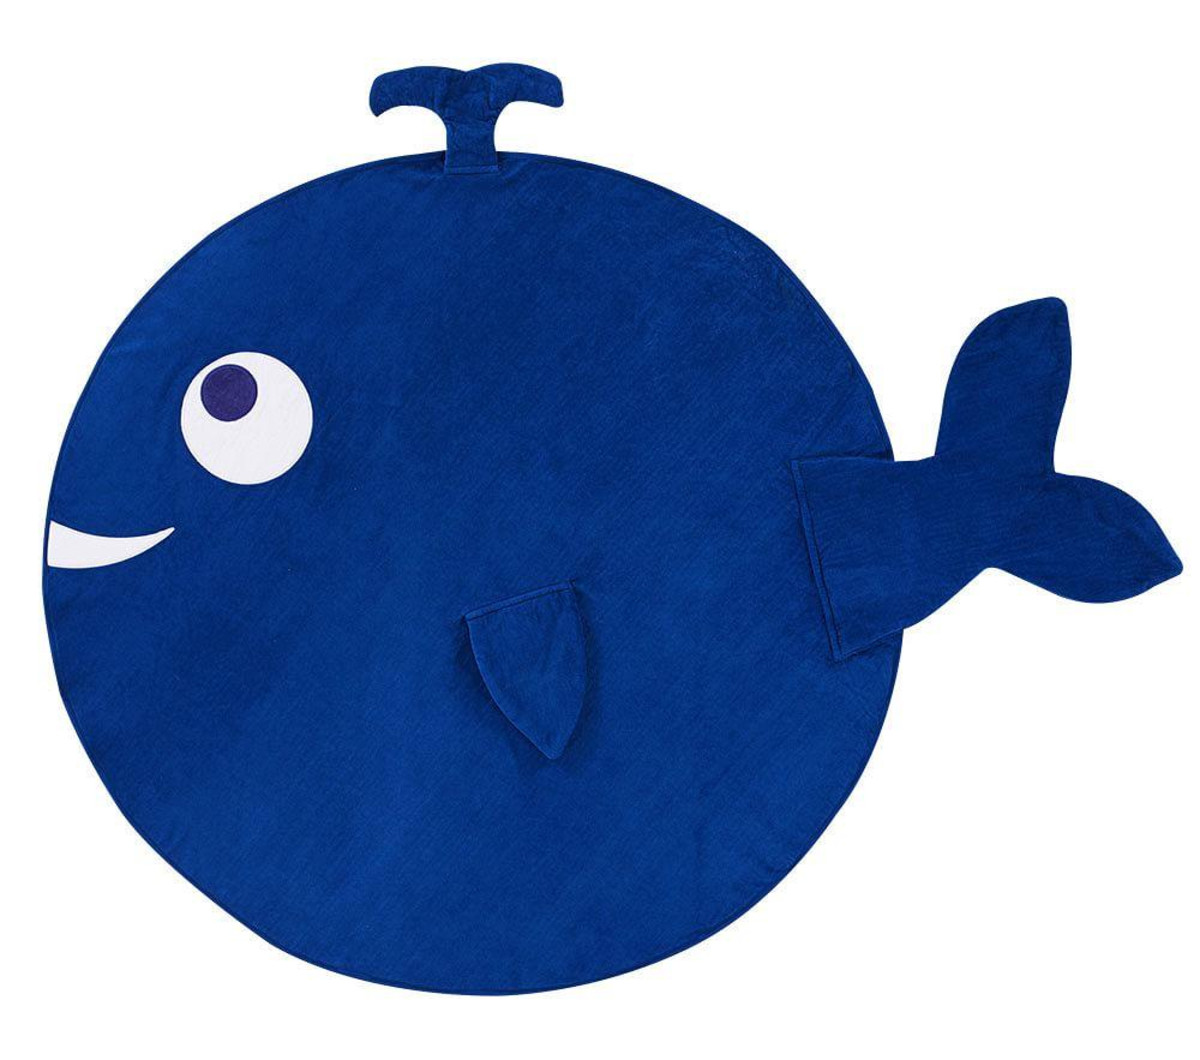 Pottery Barn Kids Whale Towel